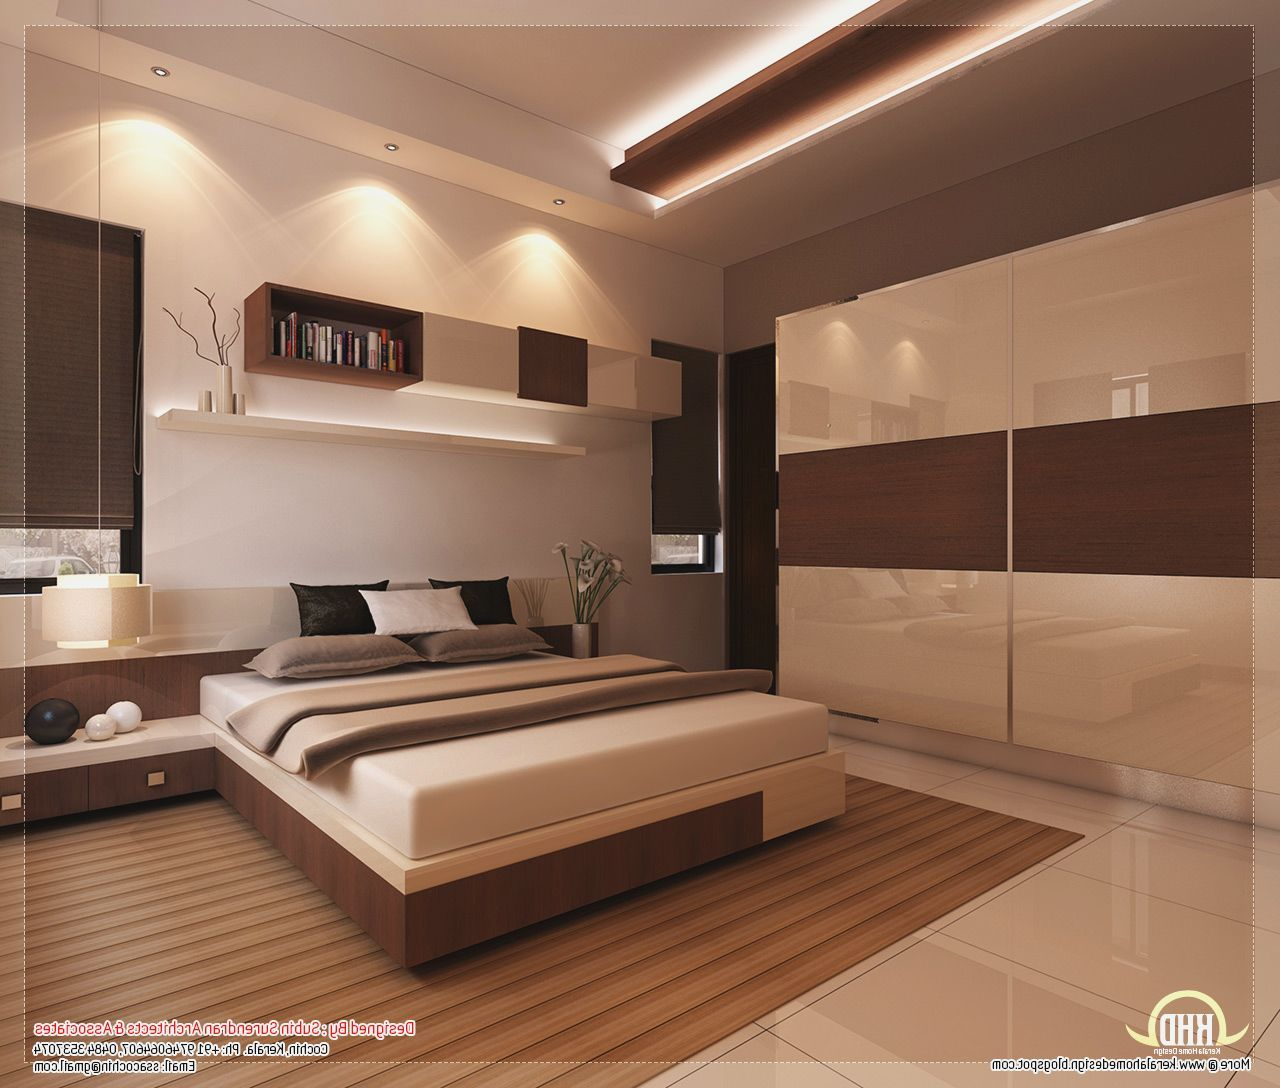 Bedroom Designs India Low Cost Gr7ee Interior Design Bedroom Bedroom Designs India Luxury Bedroom Design